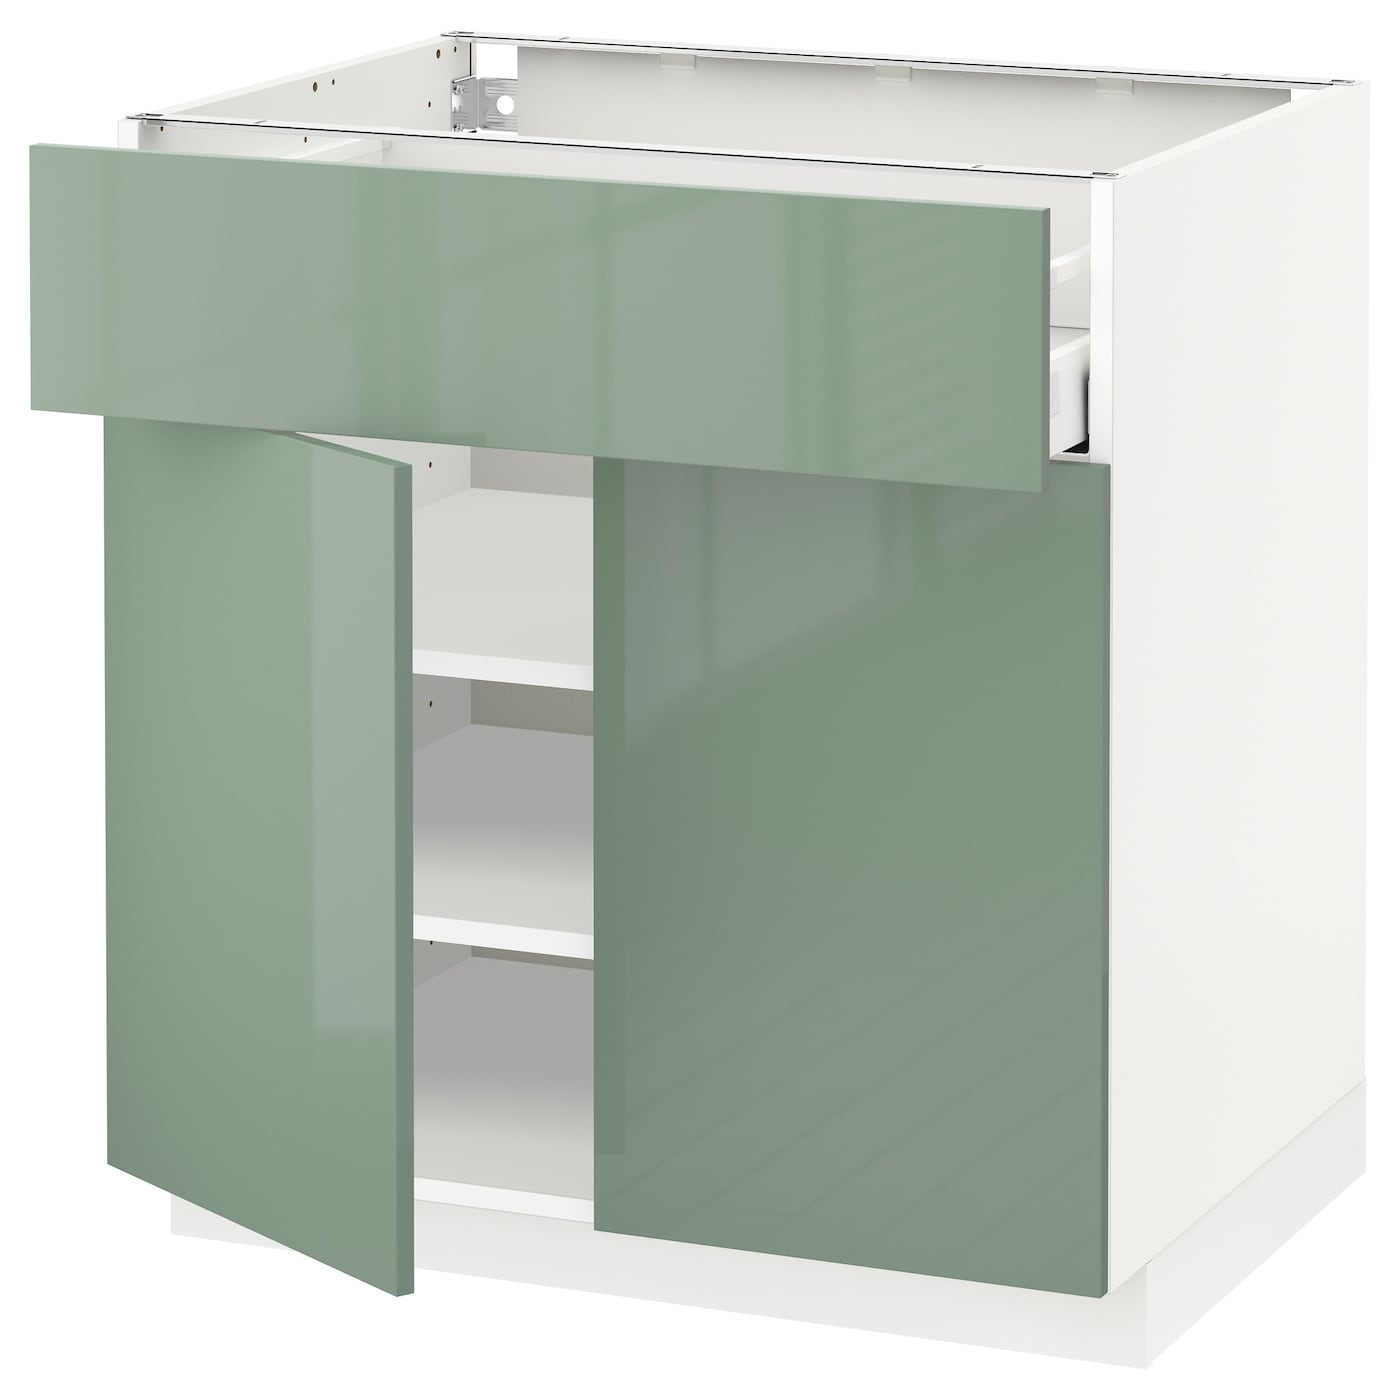 Metod maximera base cabinet with drawer 2 doors white Kitchen cabinets light green